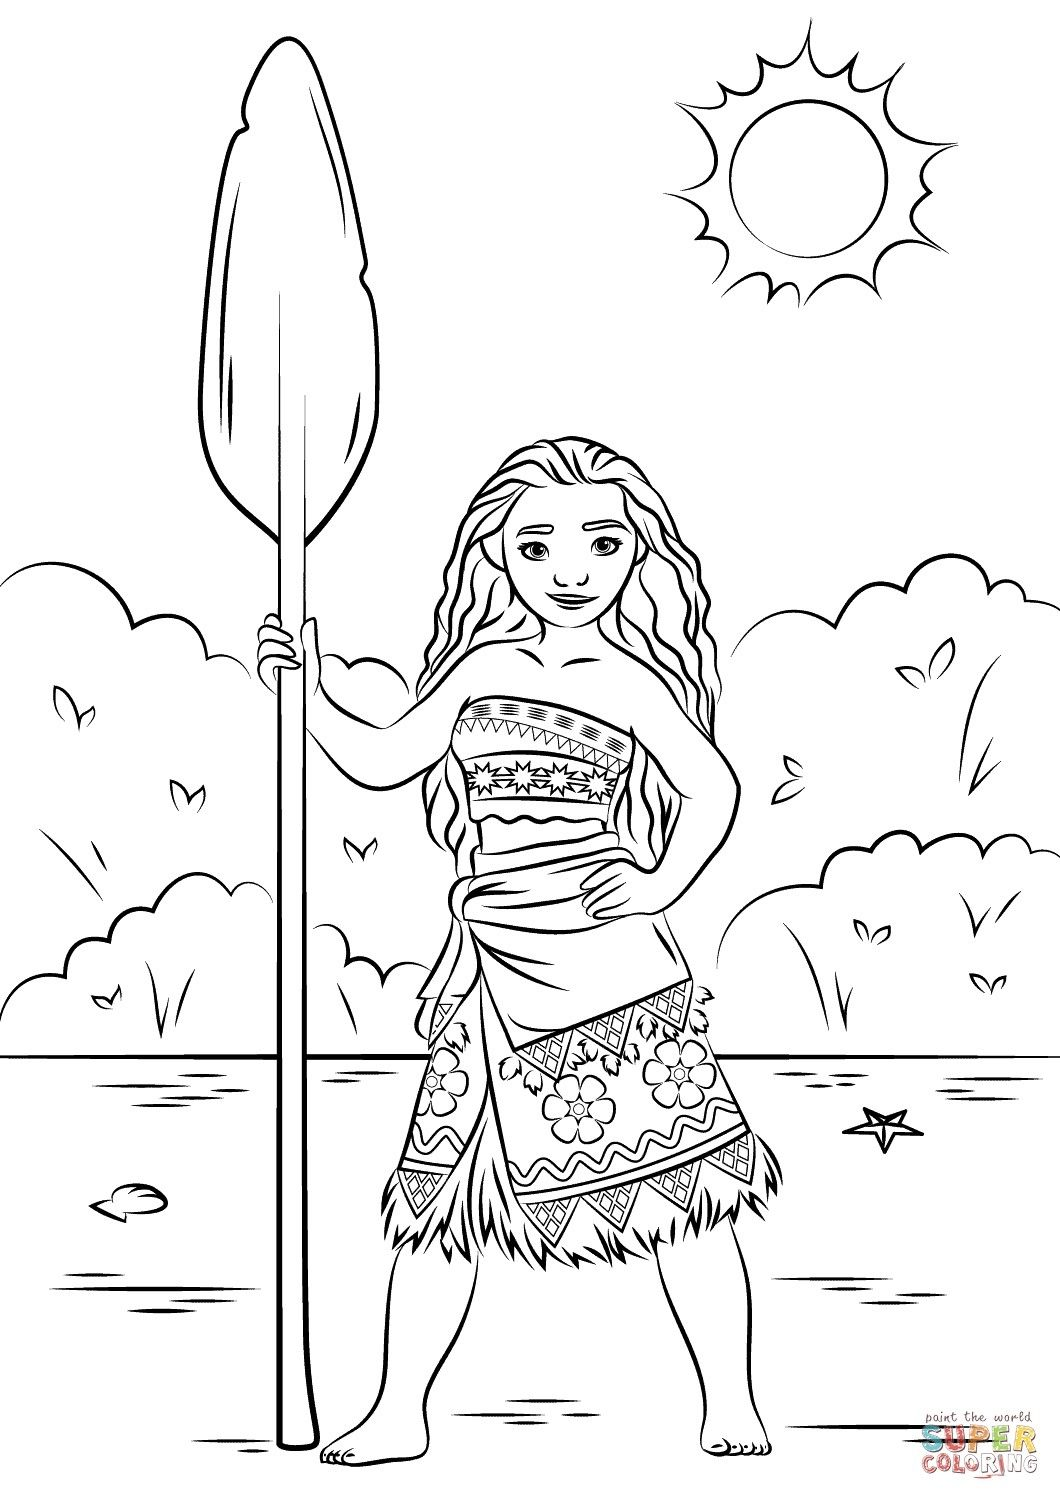 25+ Excellent Picture of Moana Coloring Pages Pdf | Moana coloring ...